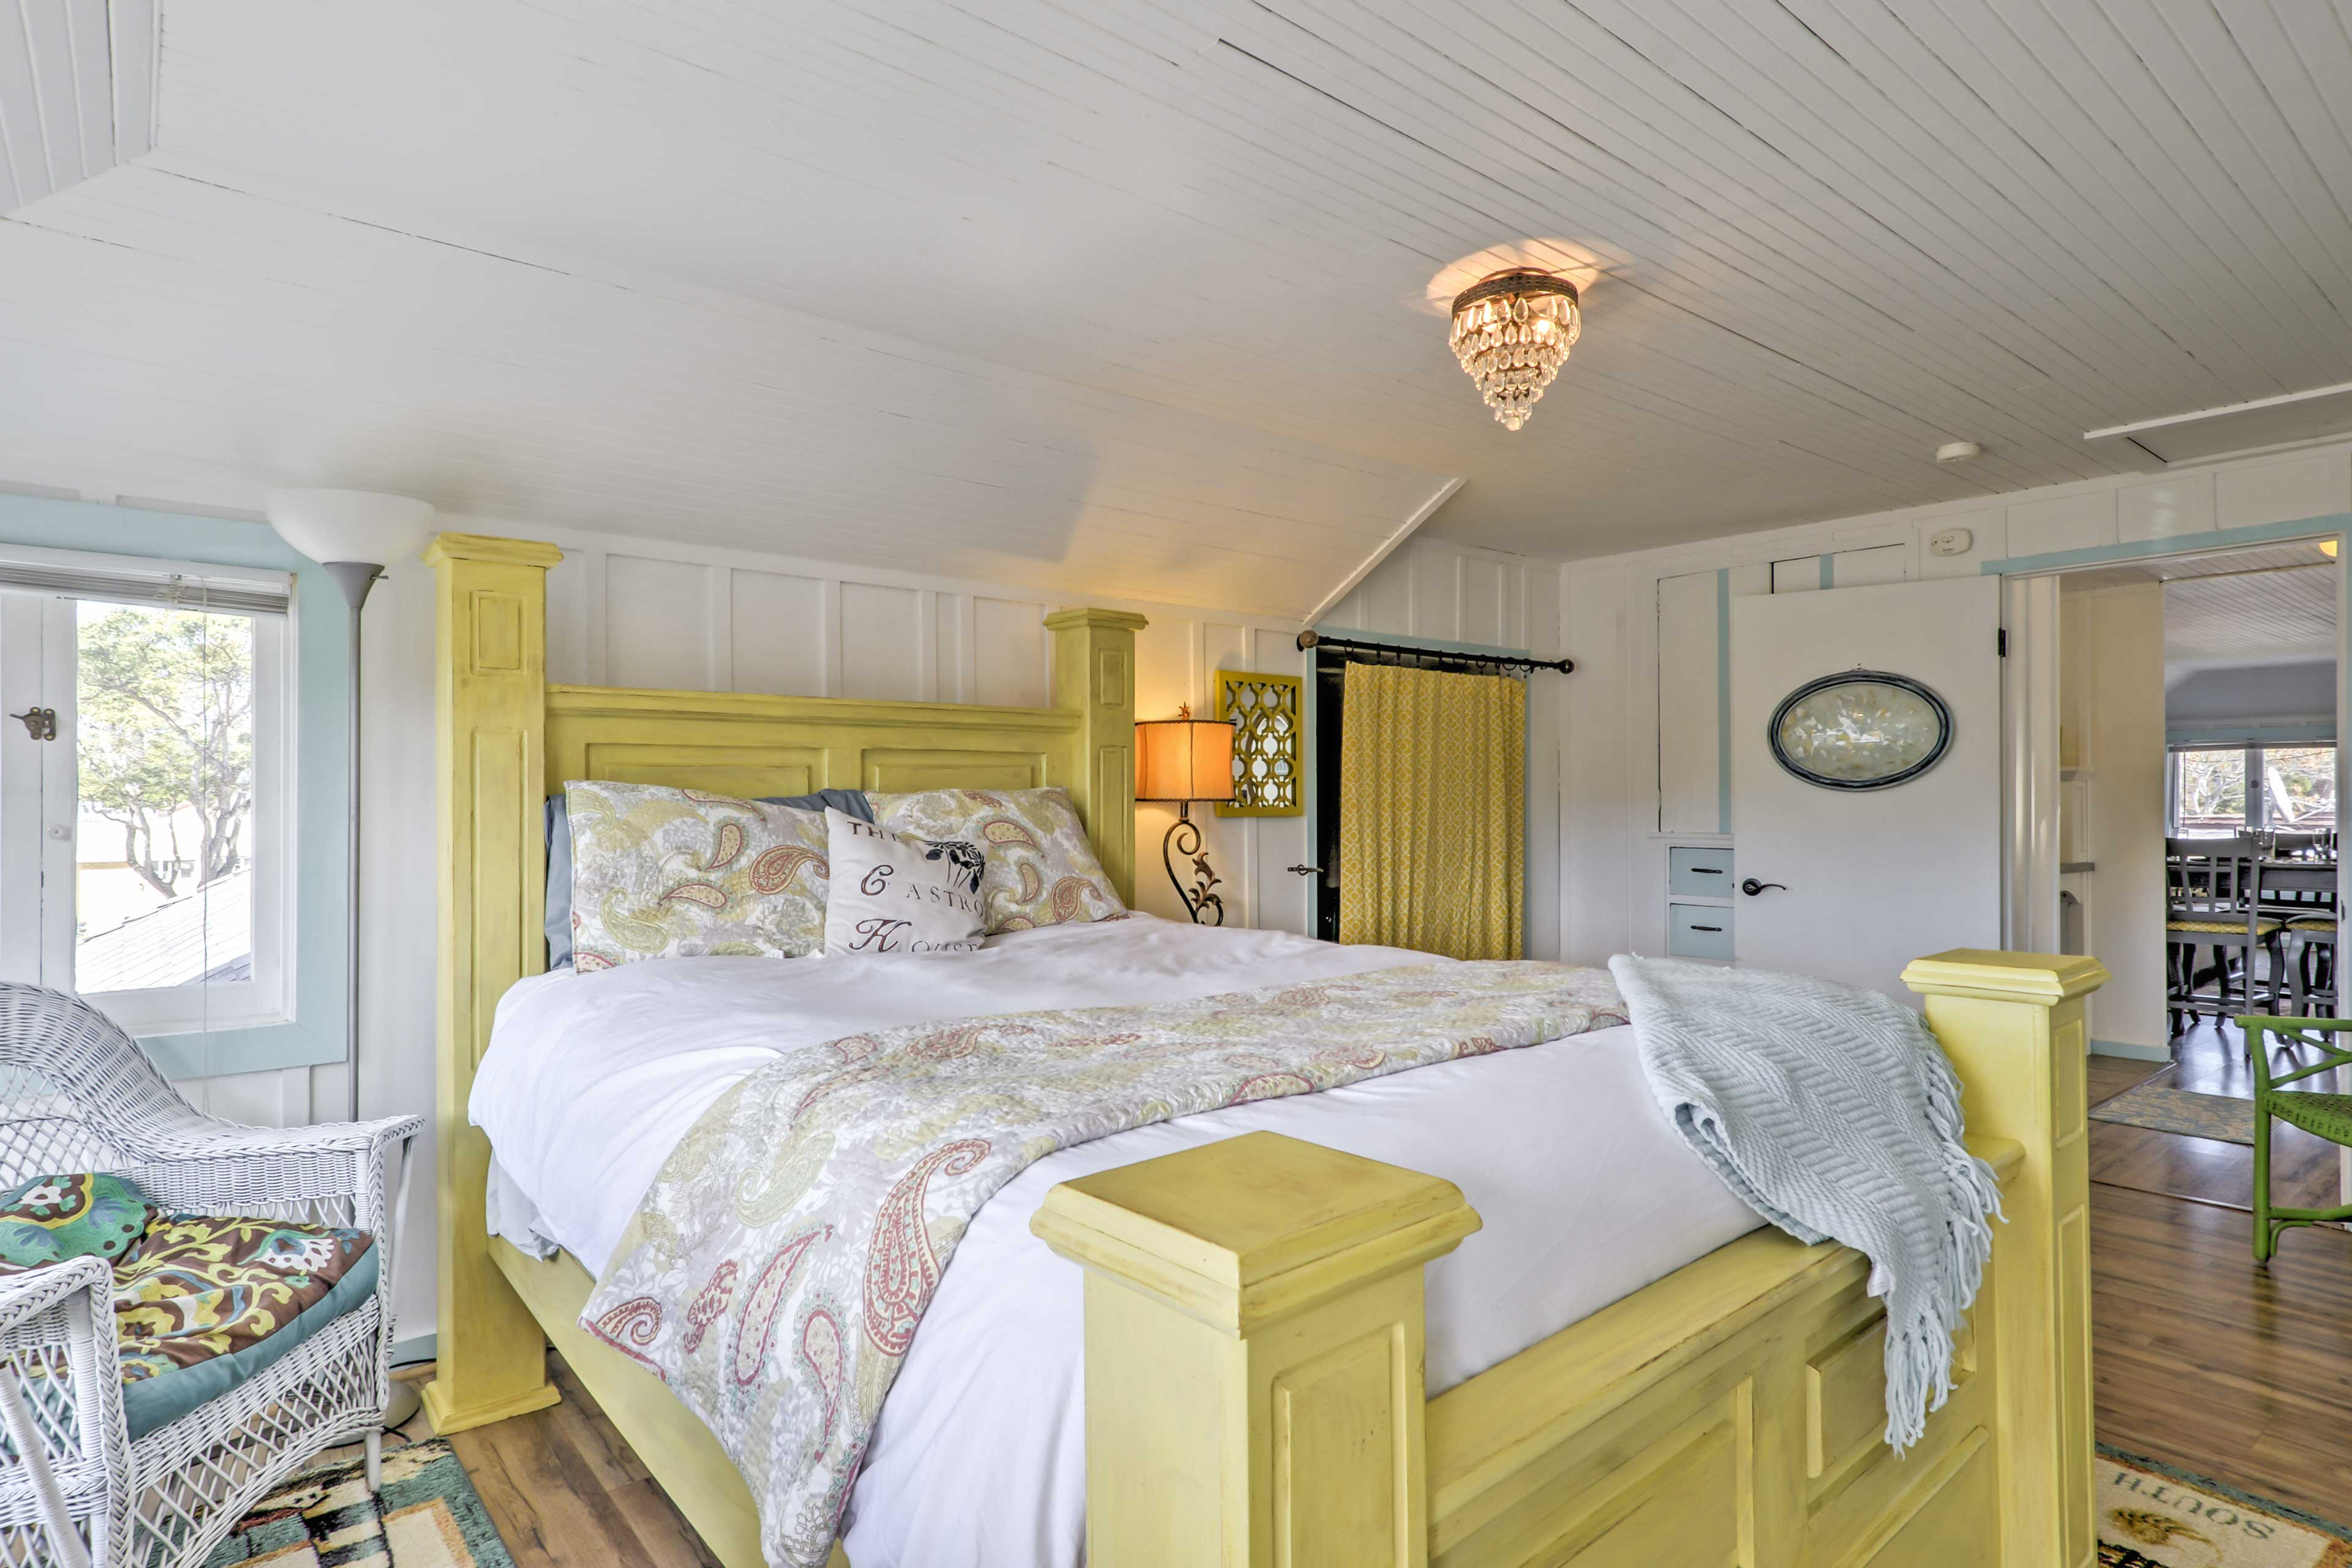 Sweet dreams will come easy in this elegantly-appointed bedroom.